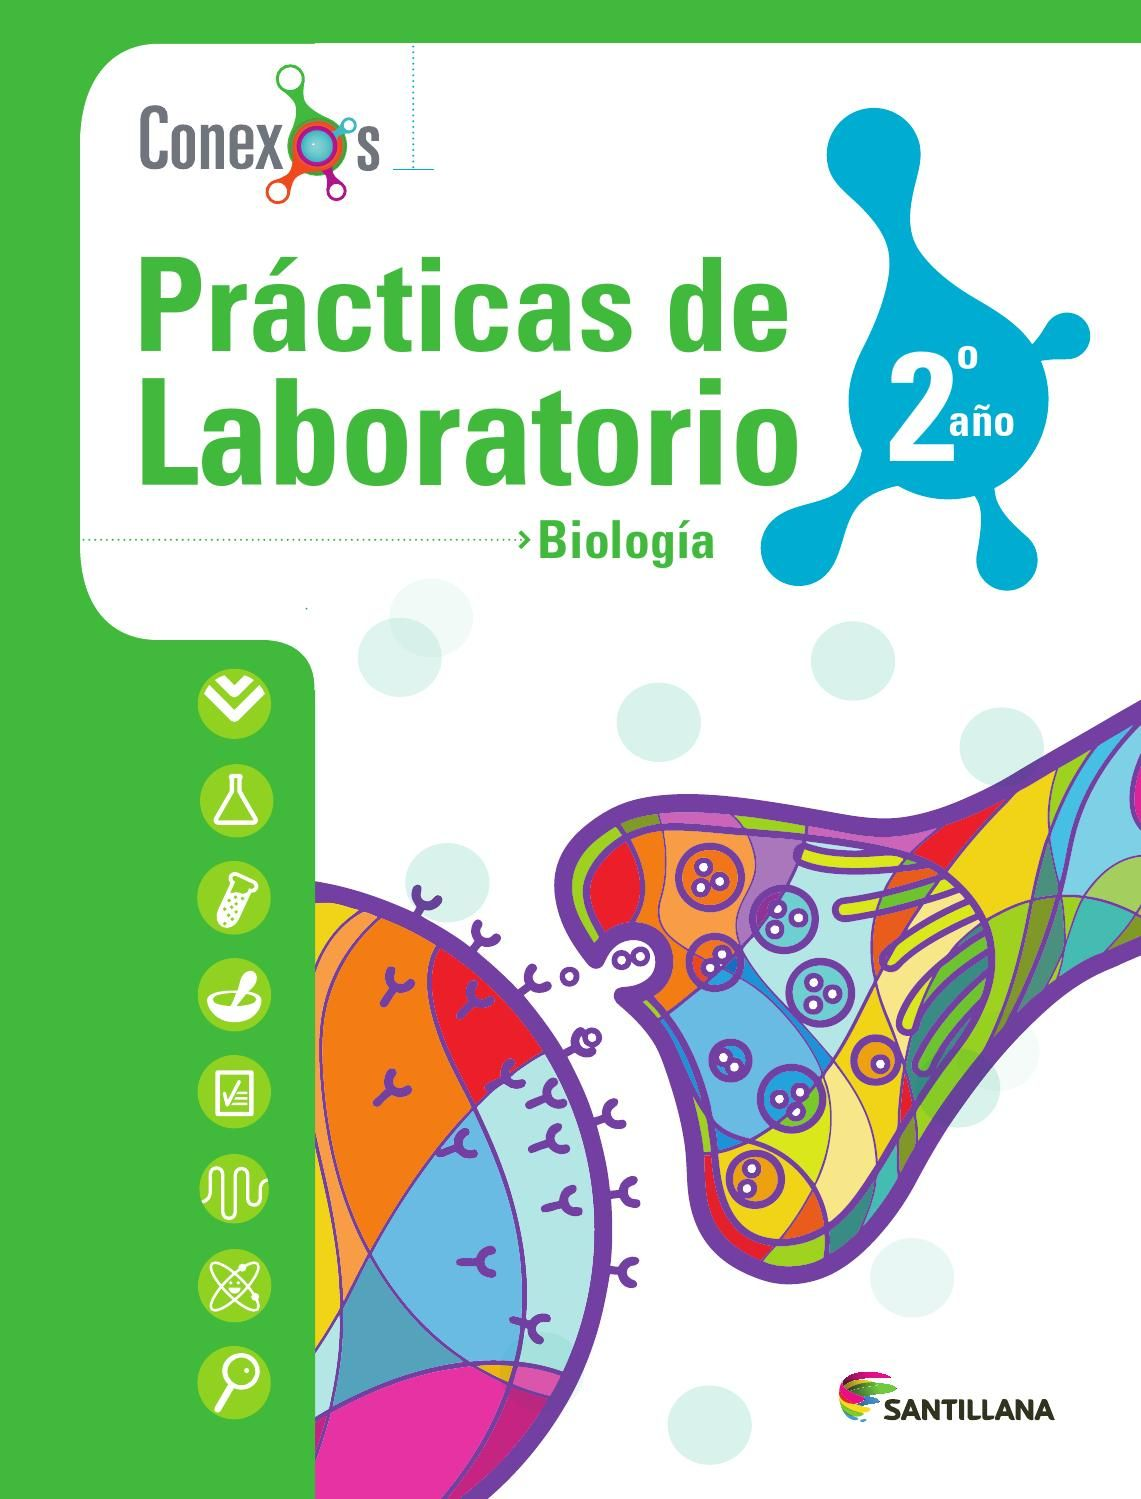 Practicas De Laboratorio Biologia 2do Ano Conexos Laboratorios